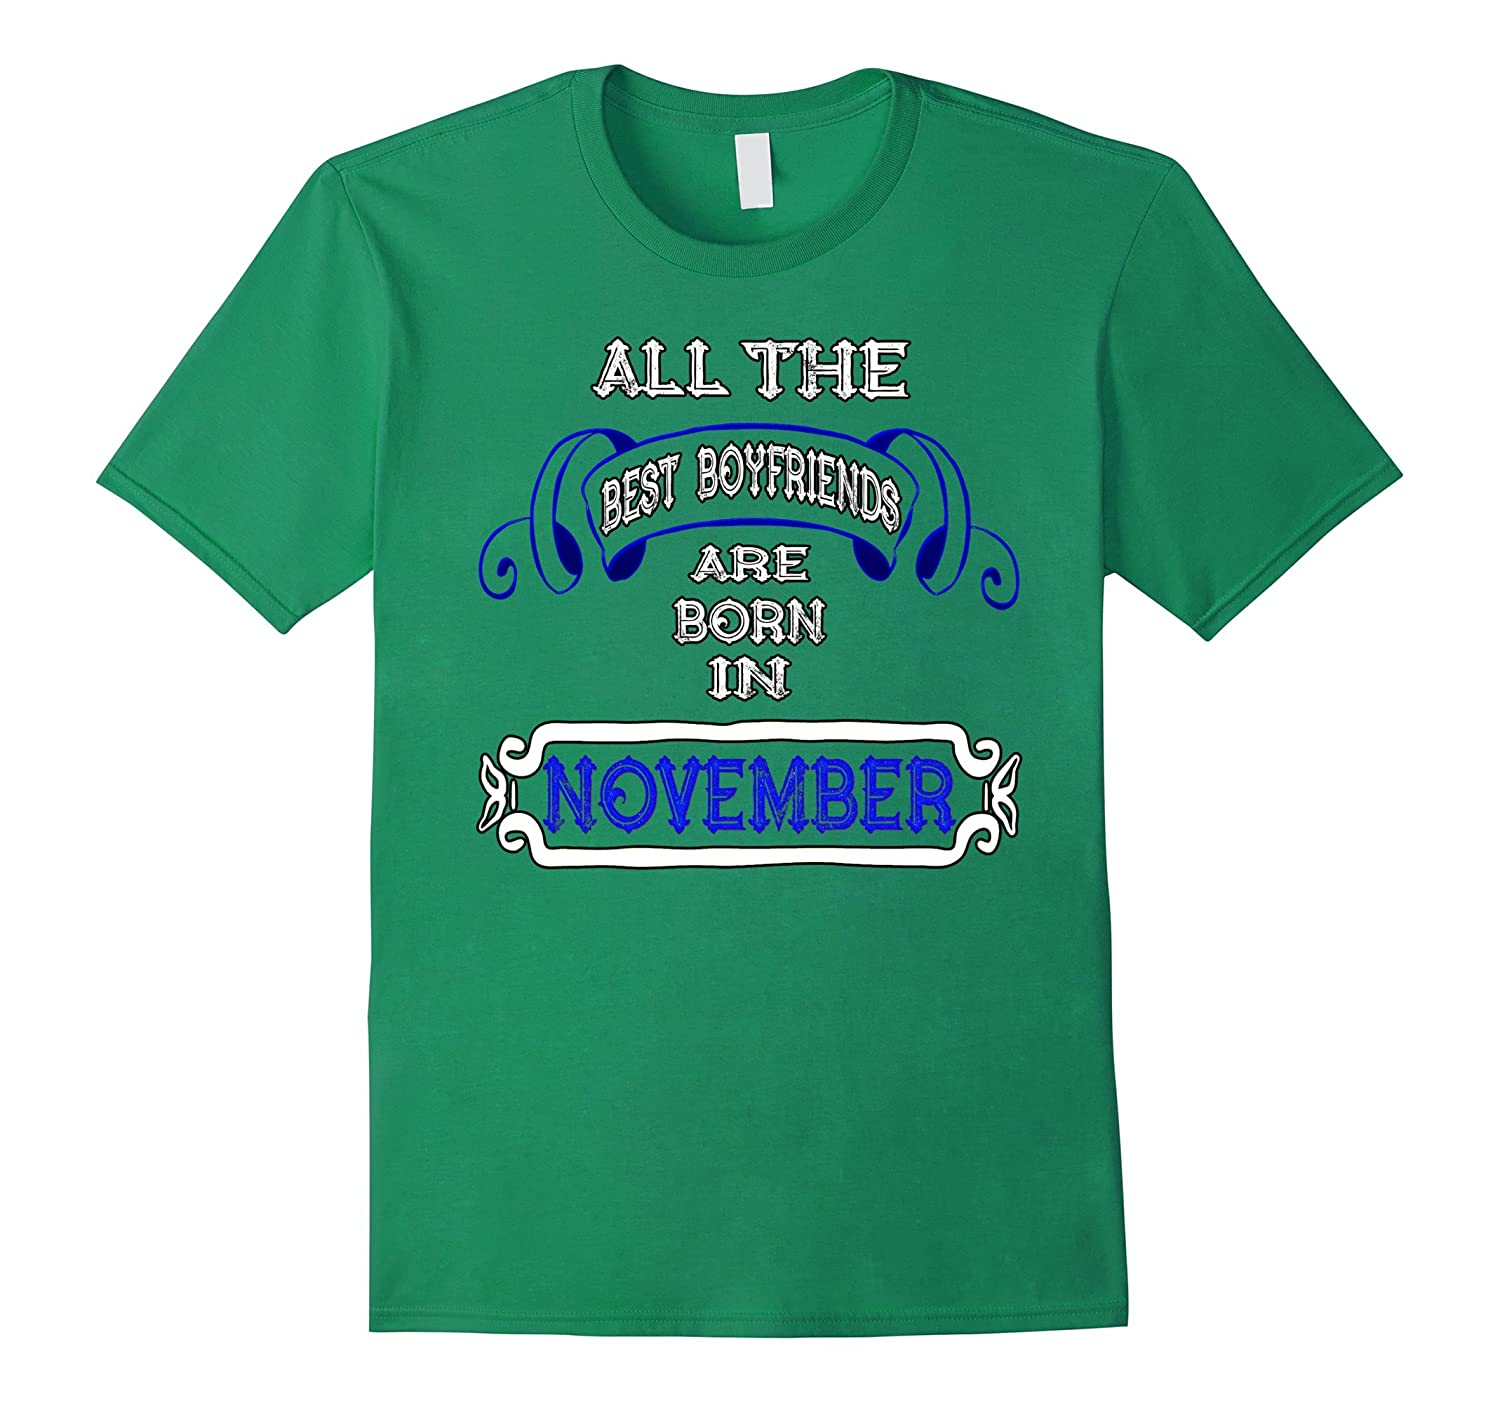 November Birthday Shirts For Men